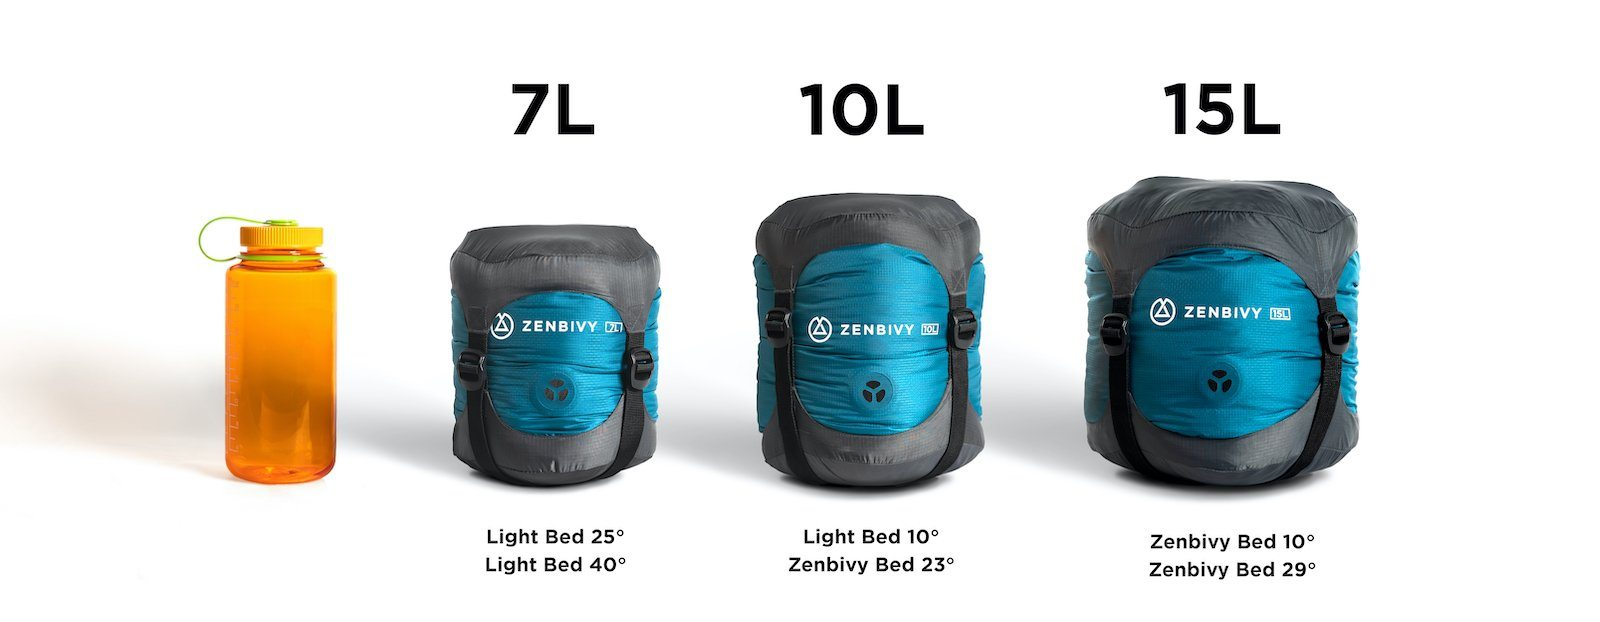 The Zenbivy Light Bed packs down roughly 20% smaller and weighs about 20% less than the original Bed.